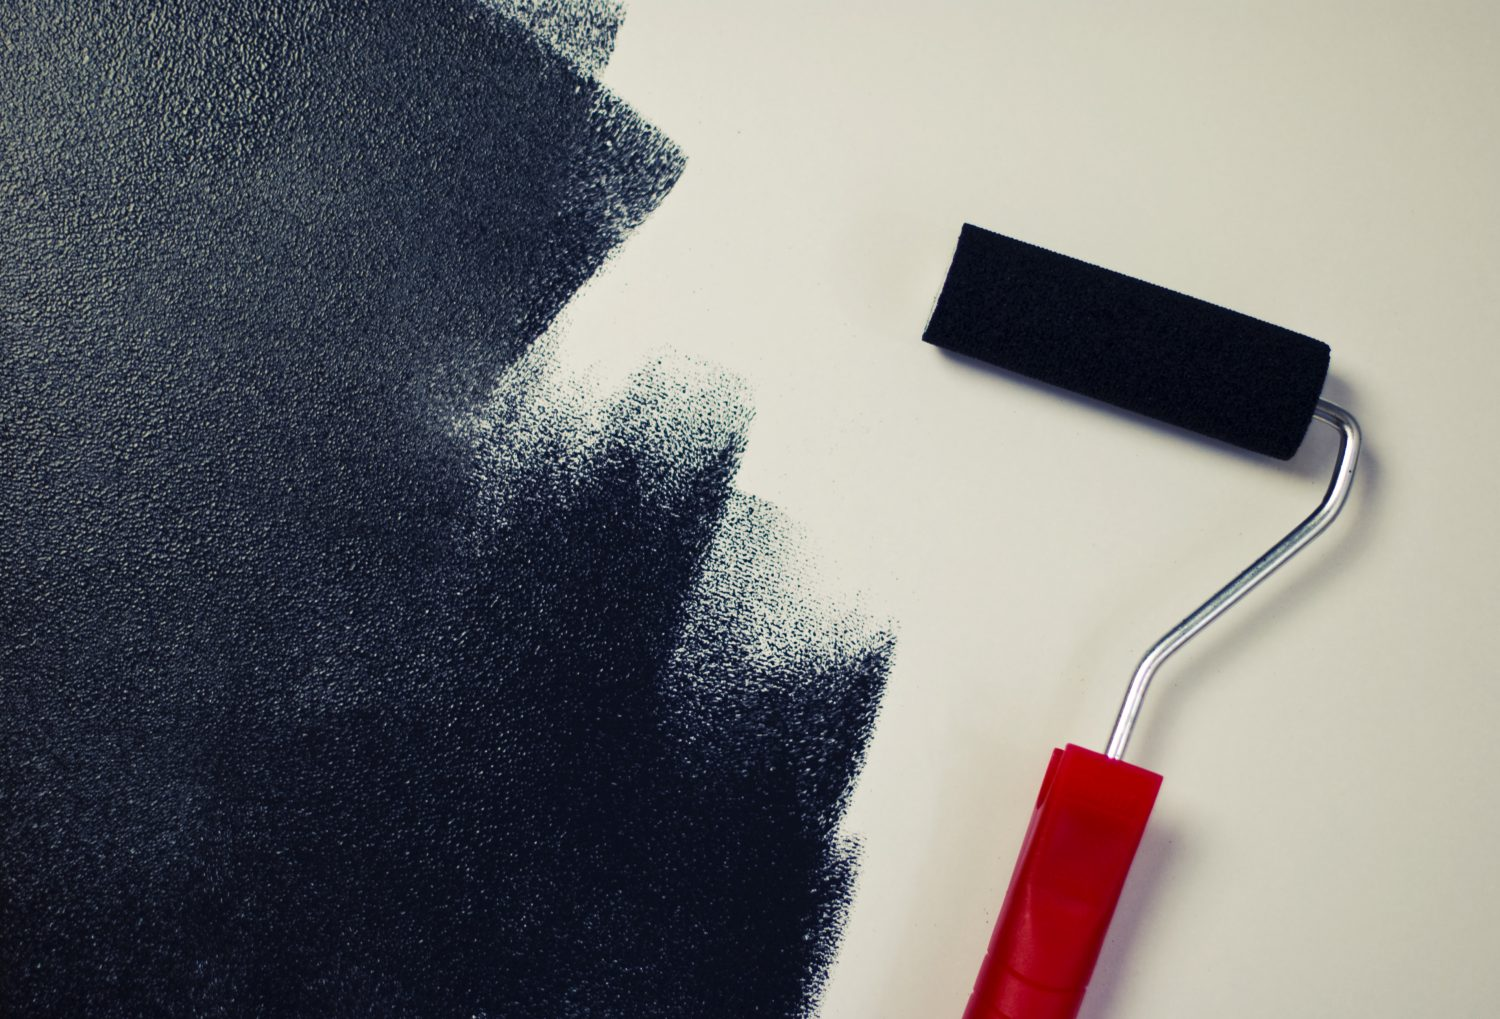 About Repaint Painting  Services